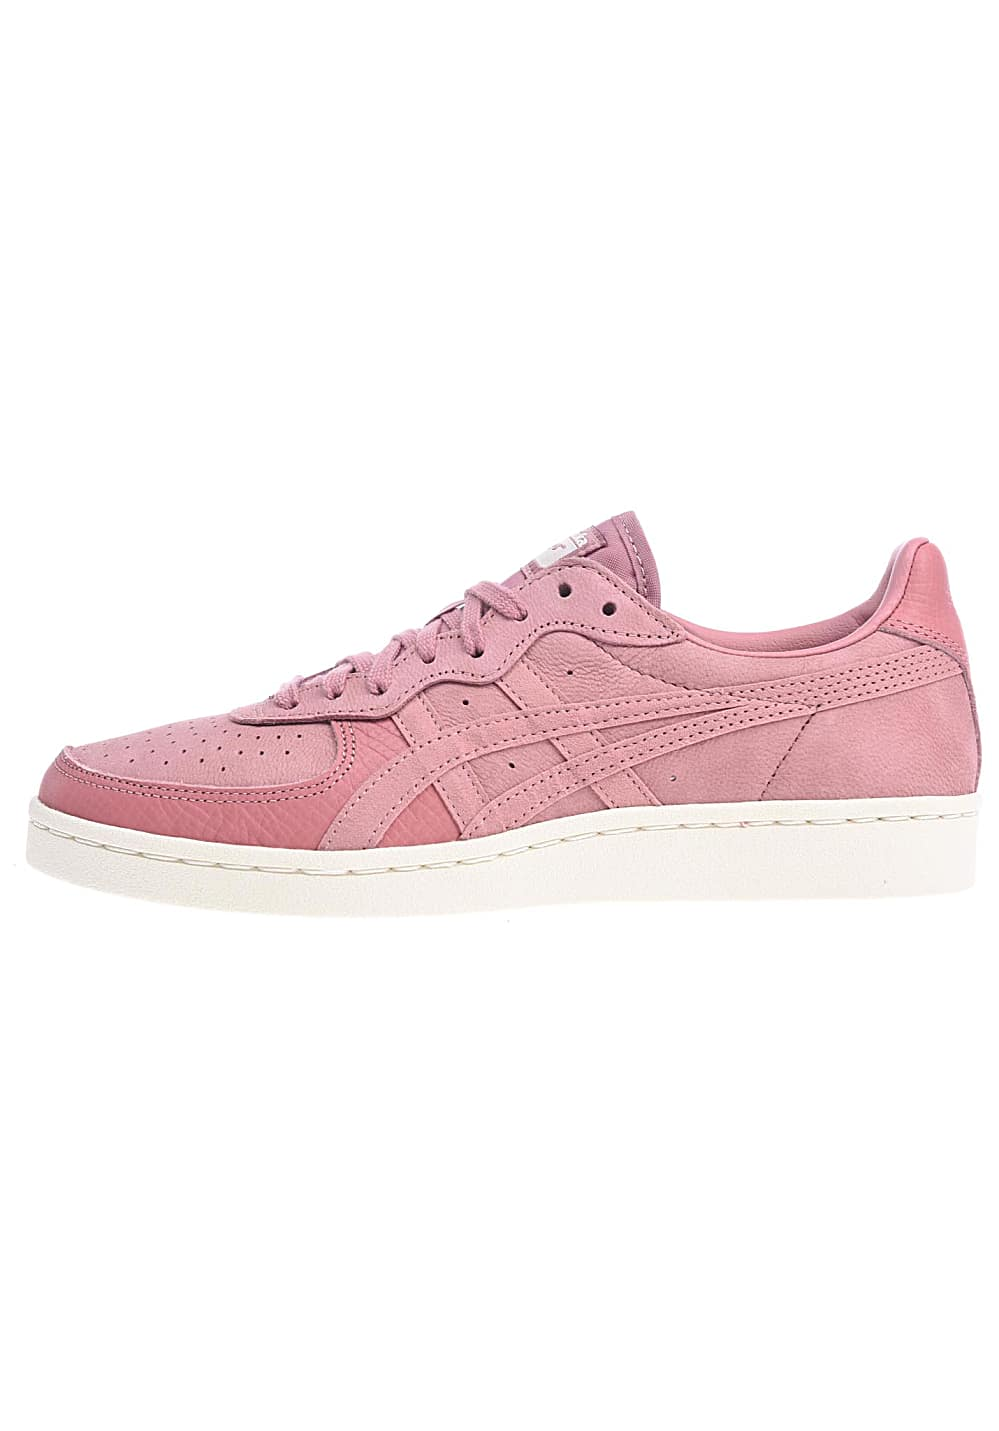 the latest a832e f2724 Onitsuka Tiger GSM - Sneakers for Women - Pink